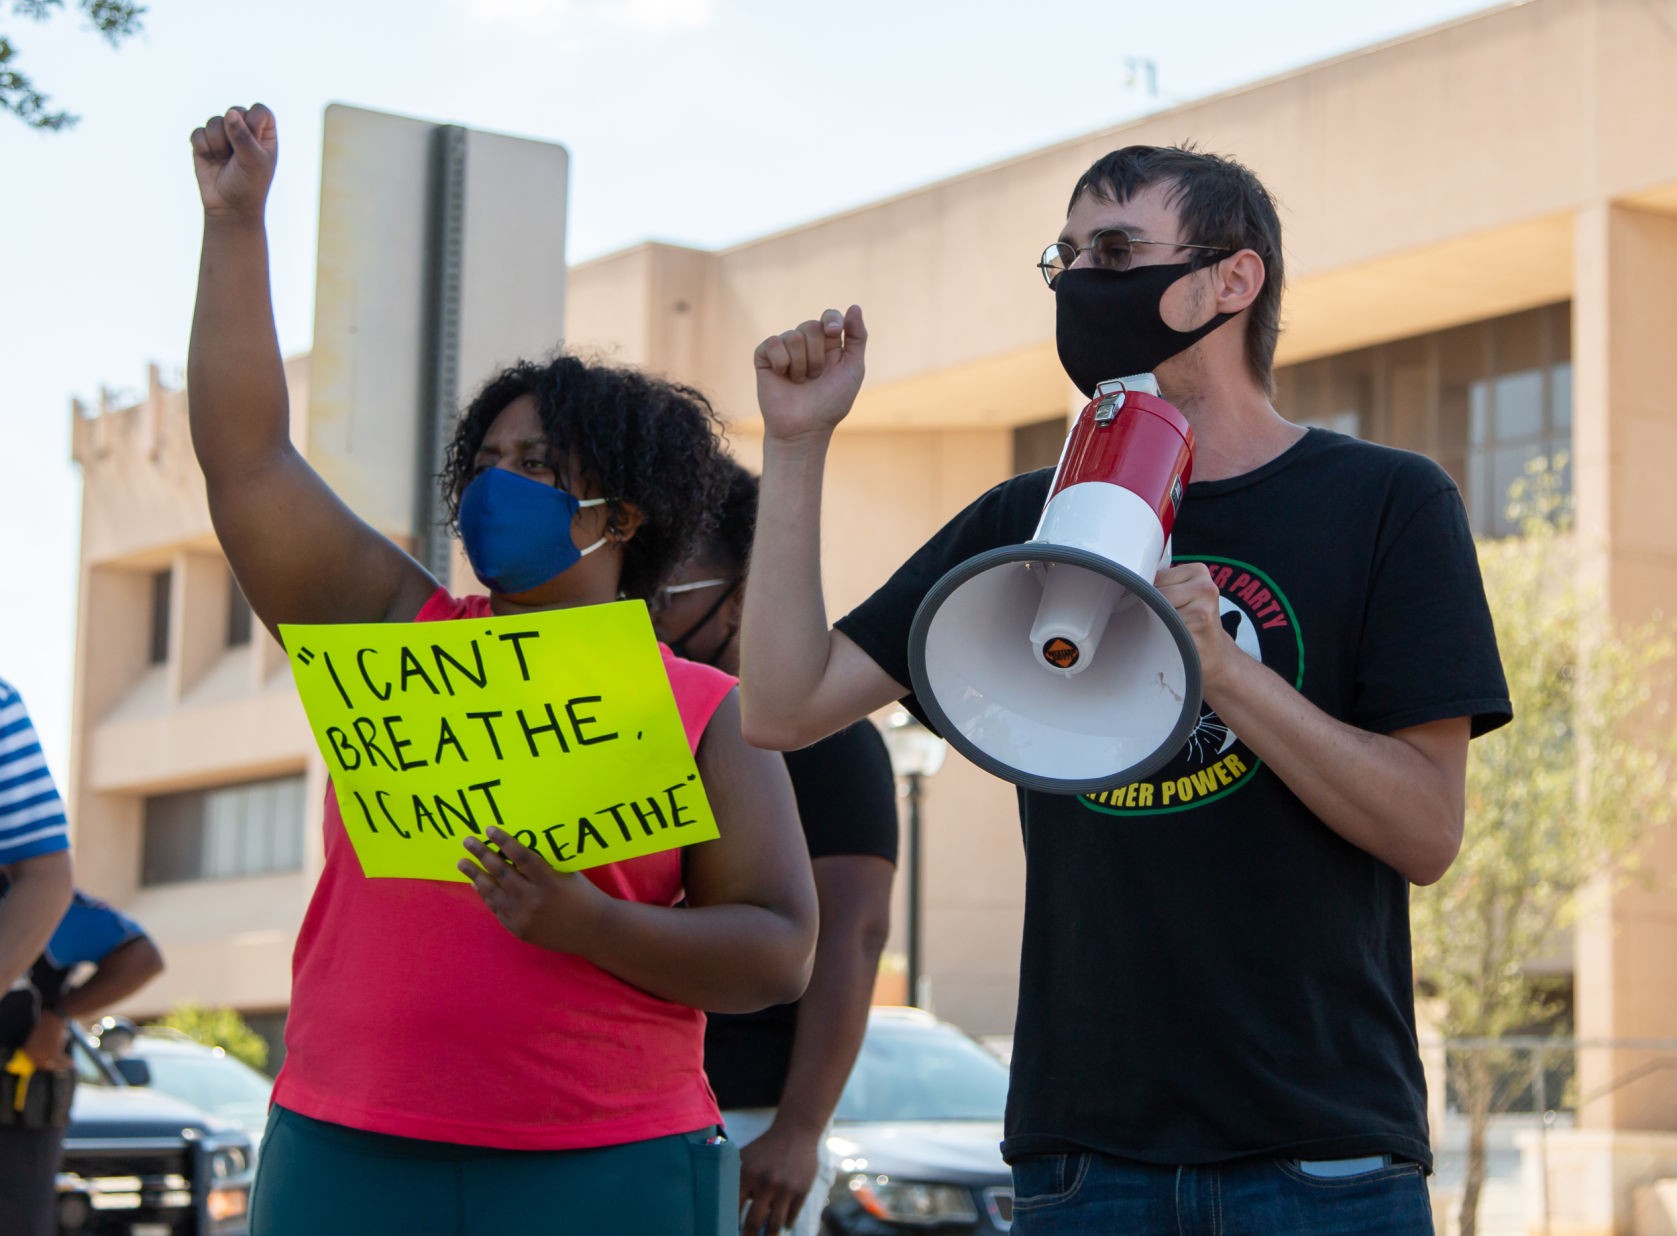 See the latest protest news for Arlington, Dallas and Fort Worth